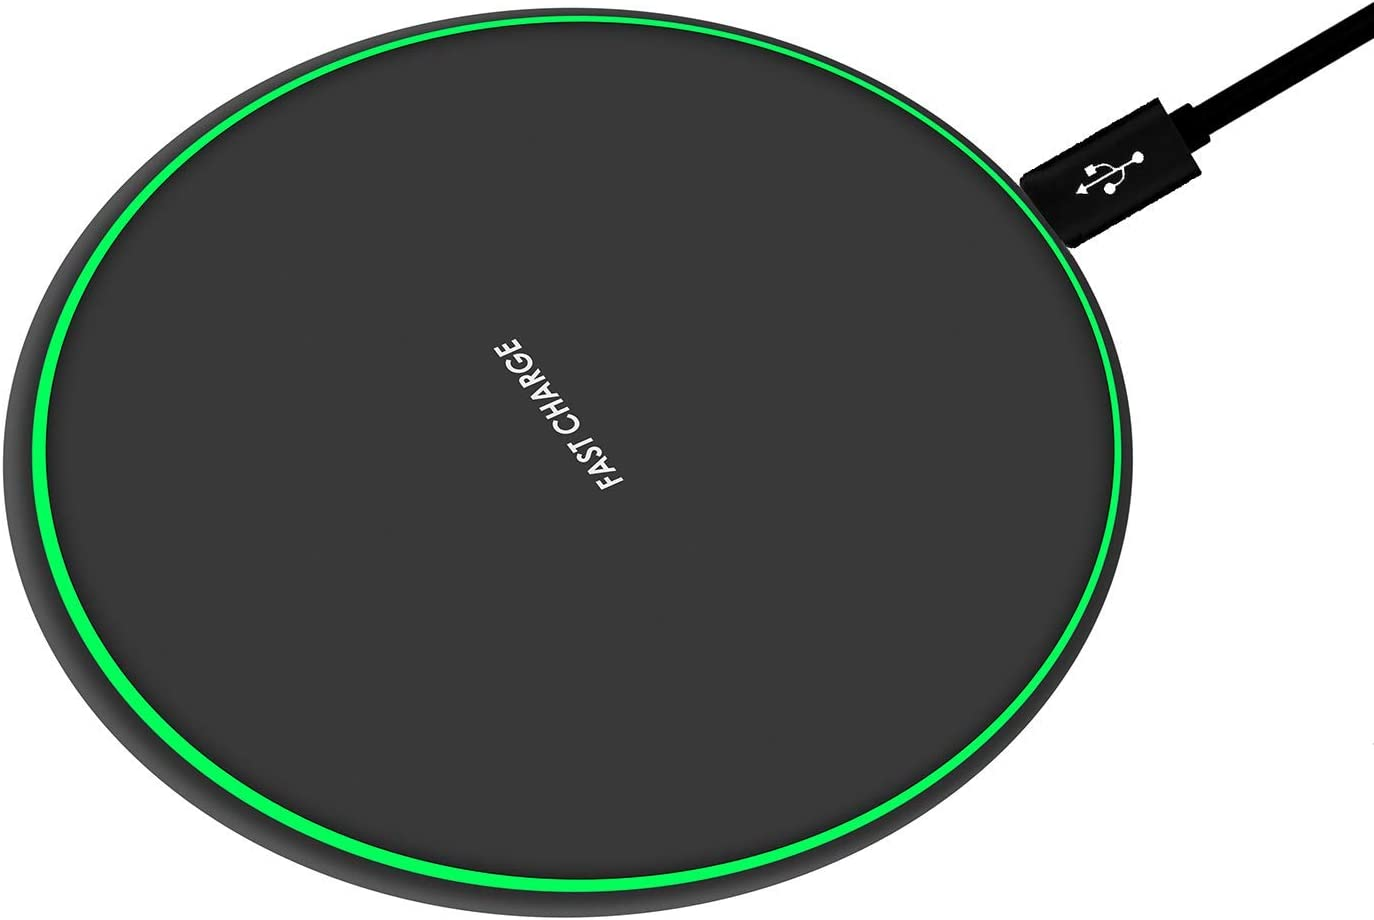 Wireless Charger Black Fast Ultra Slim 10W Wireless Charging Station Qi-Certified,Universal Wireless Charging Station Pad Compatible for Smart Phones and Other QI Devices(No AC Adapter,1 Pack)